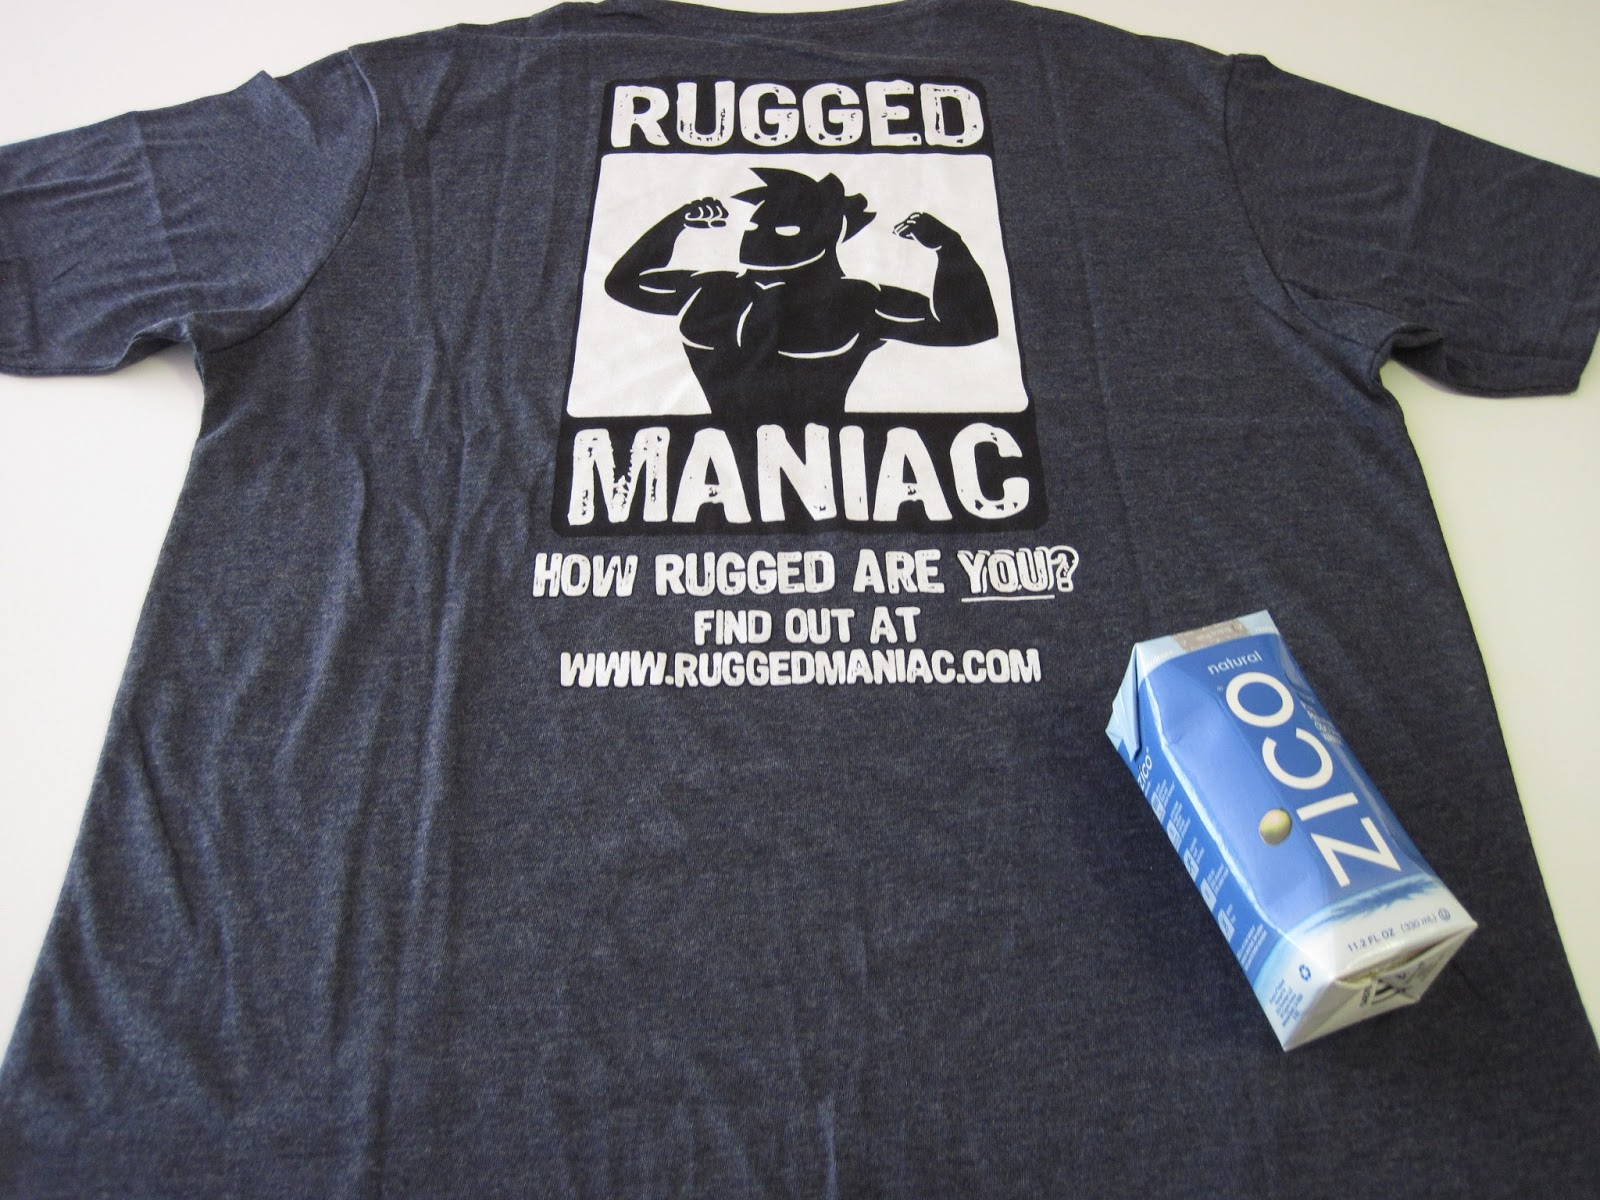 Rugged T Shirts Rugs Ideas